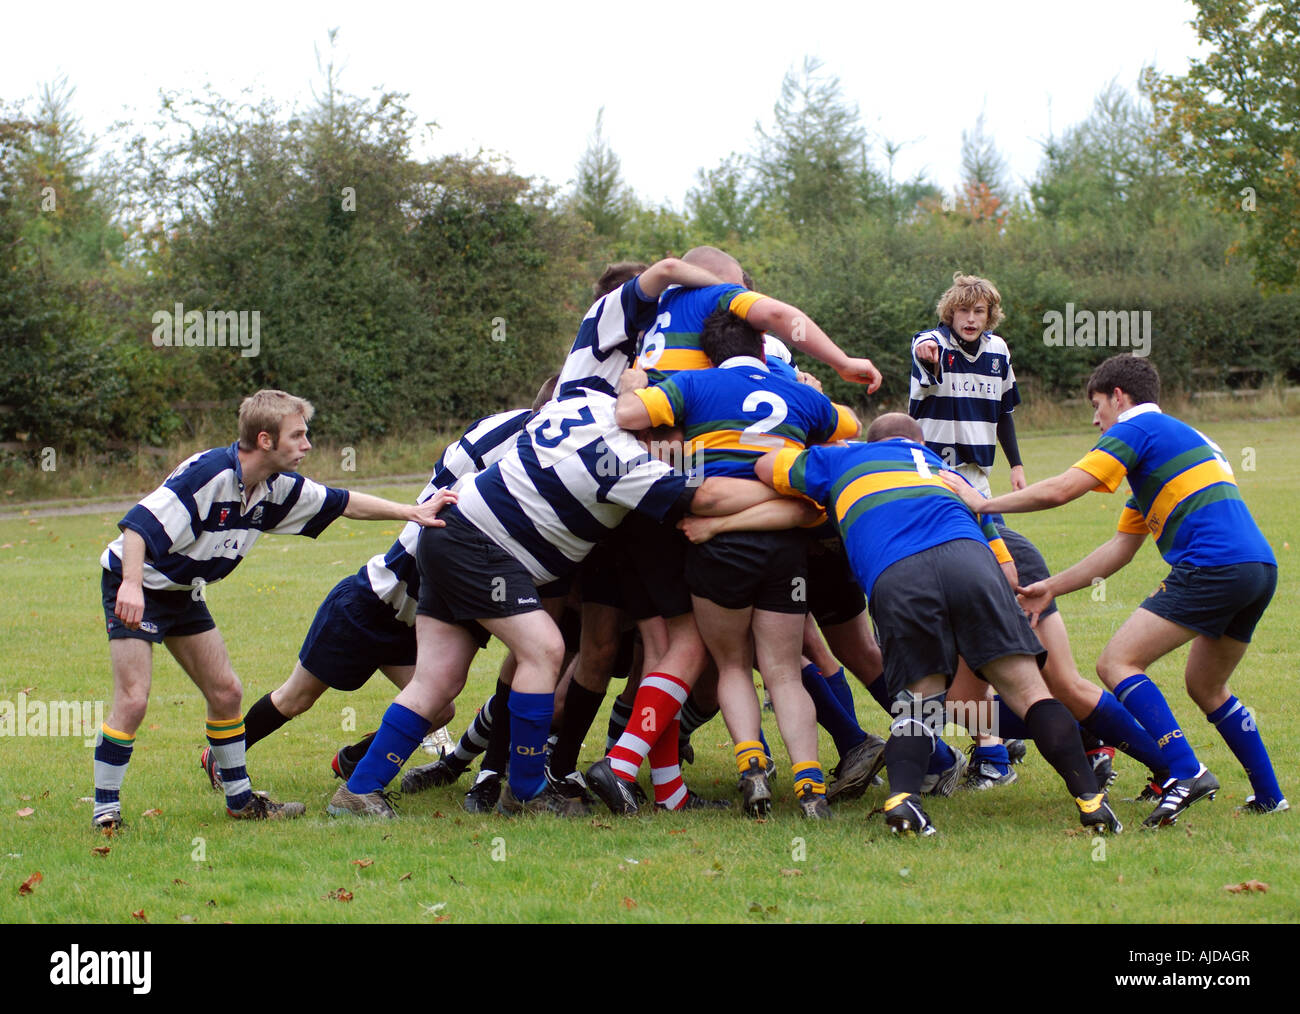 Rugby Union at club level, Leamington Spa, Warwickshire, England, UK - Stock Image